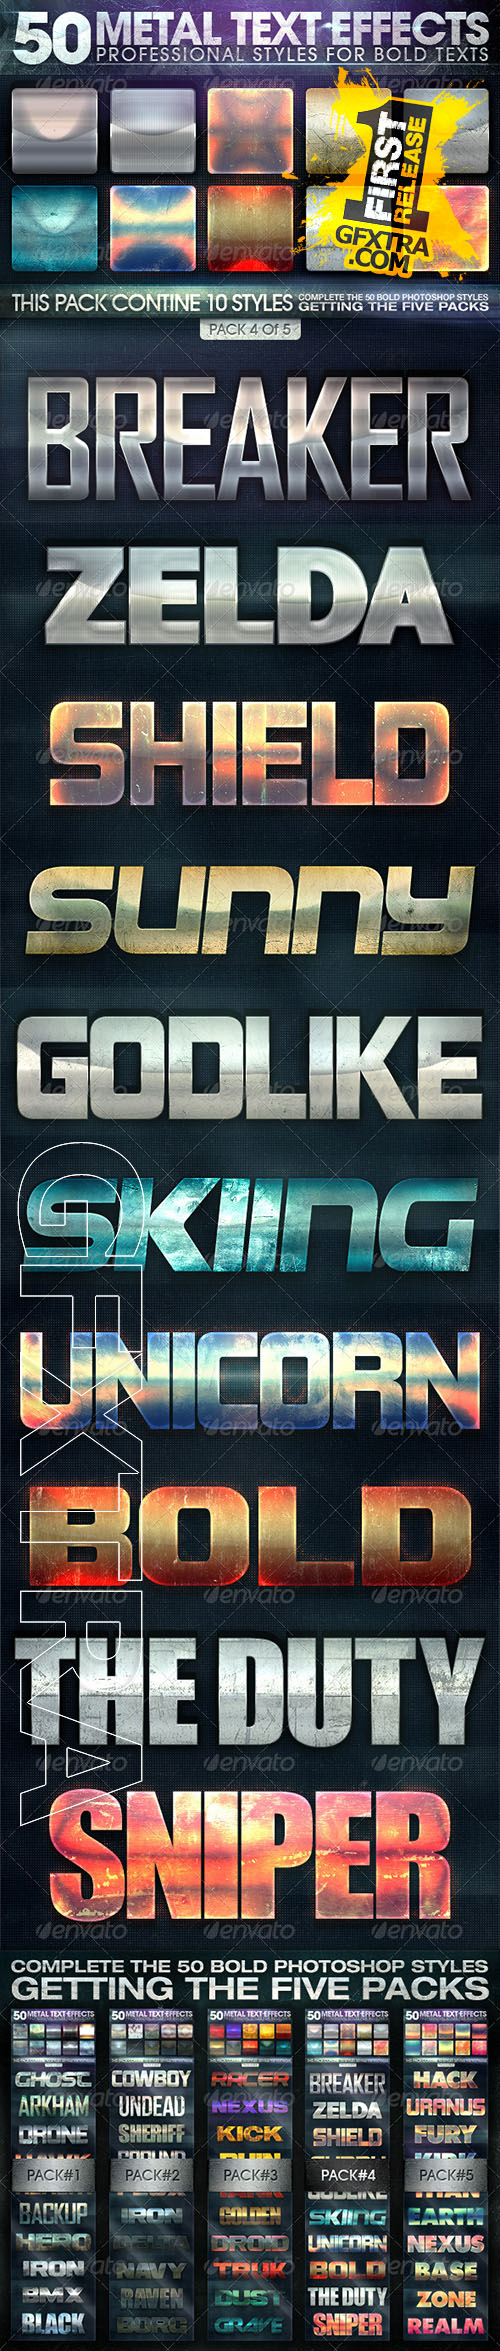 Graphicriver - 50 Metal Text Effects 4 of 5 7336802